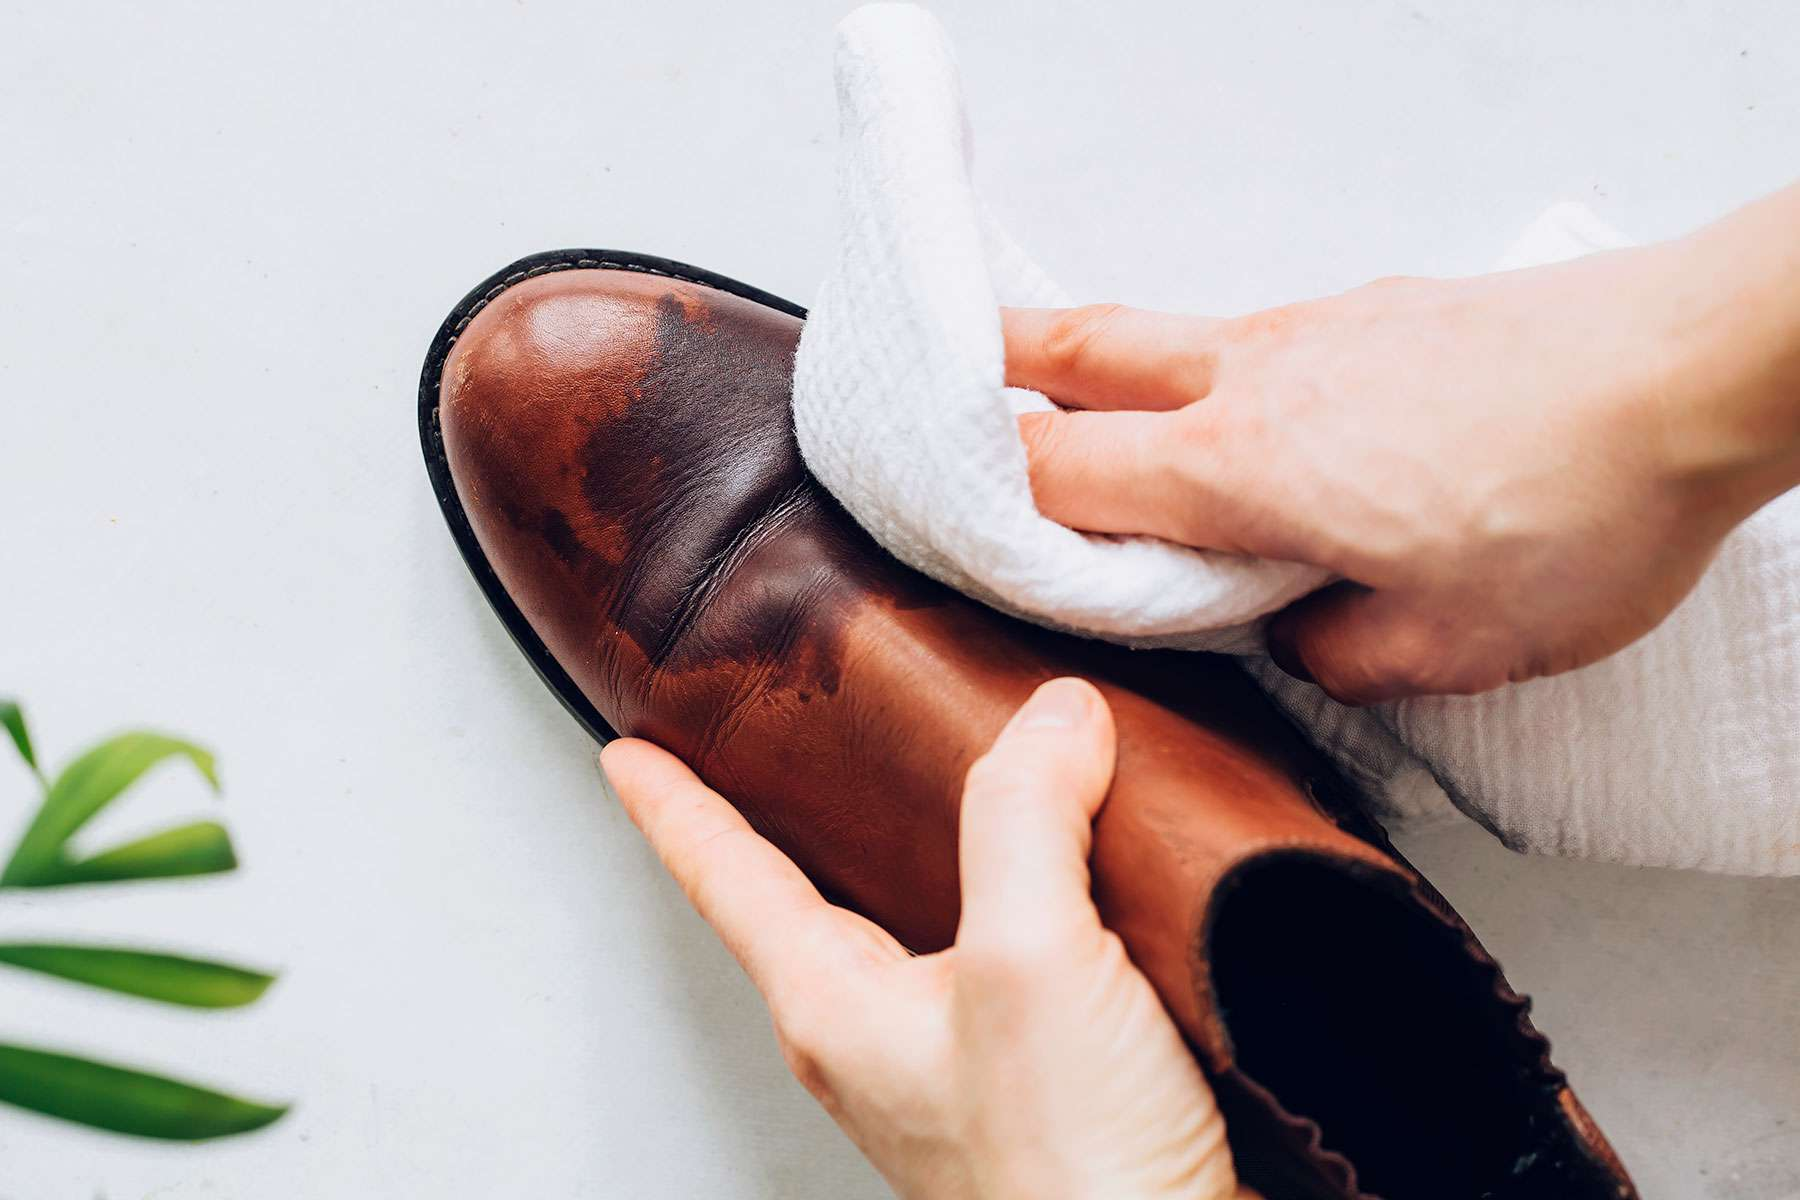 using a soft cloth on shoes with cement stains